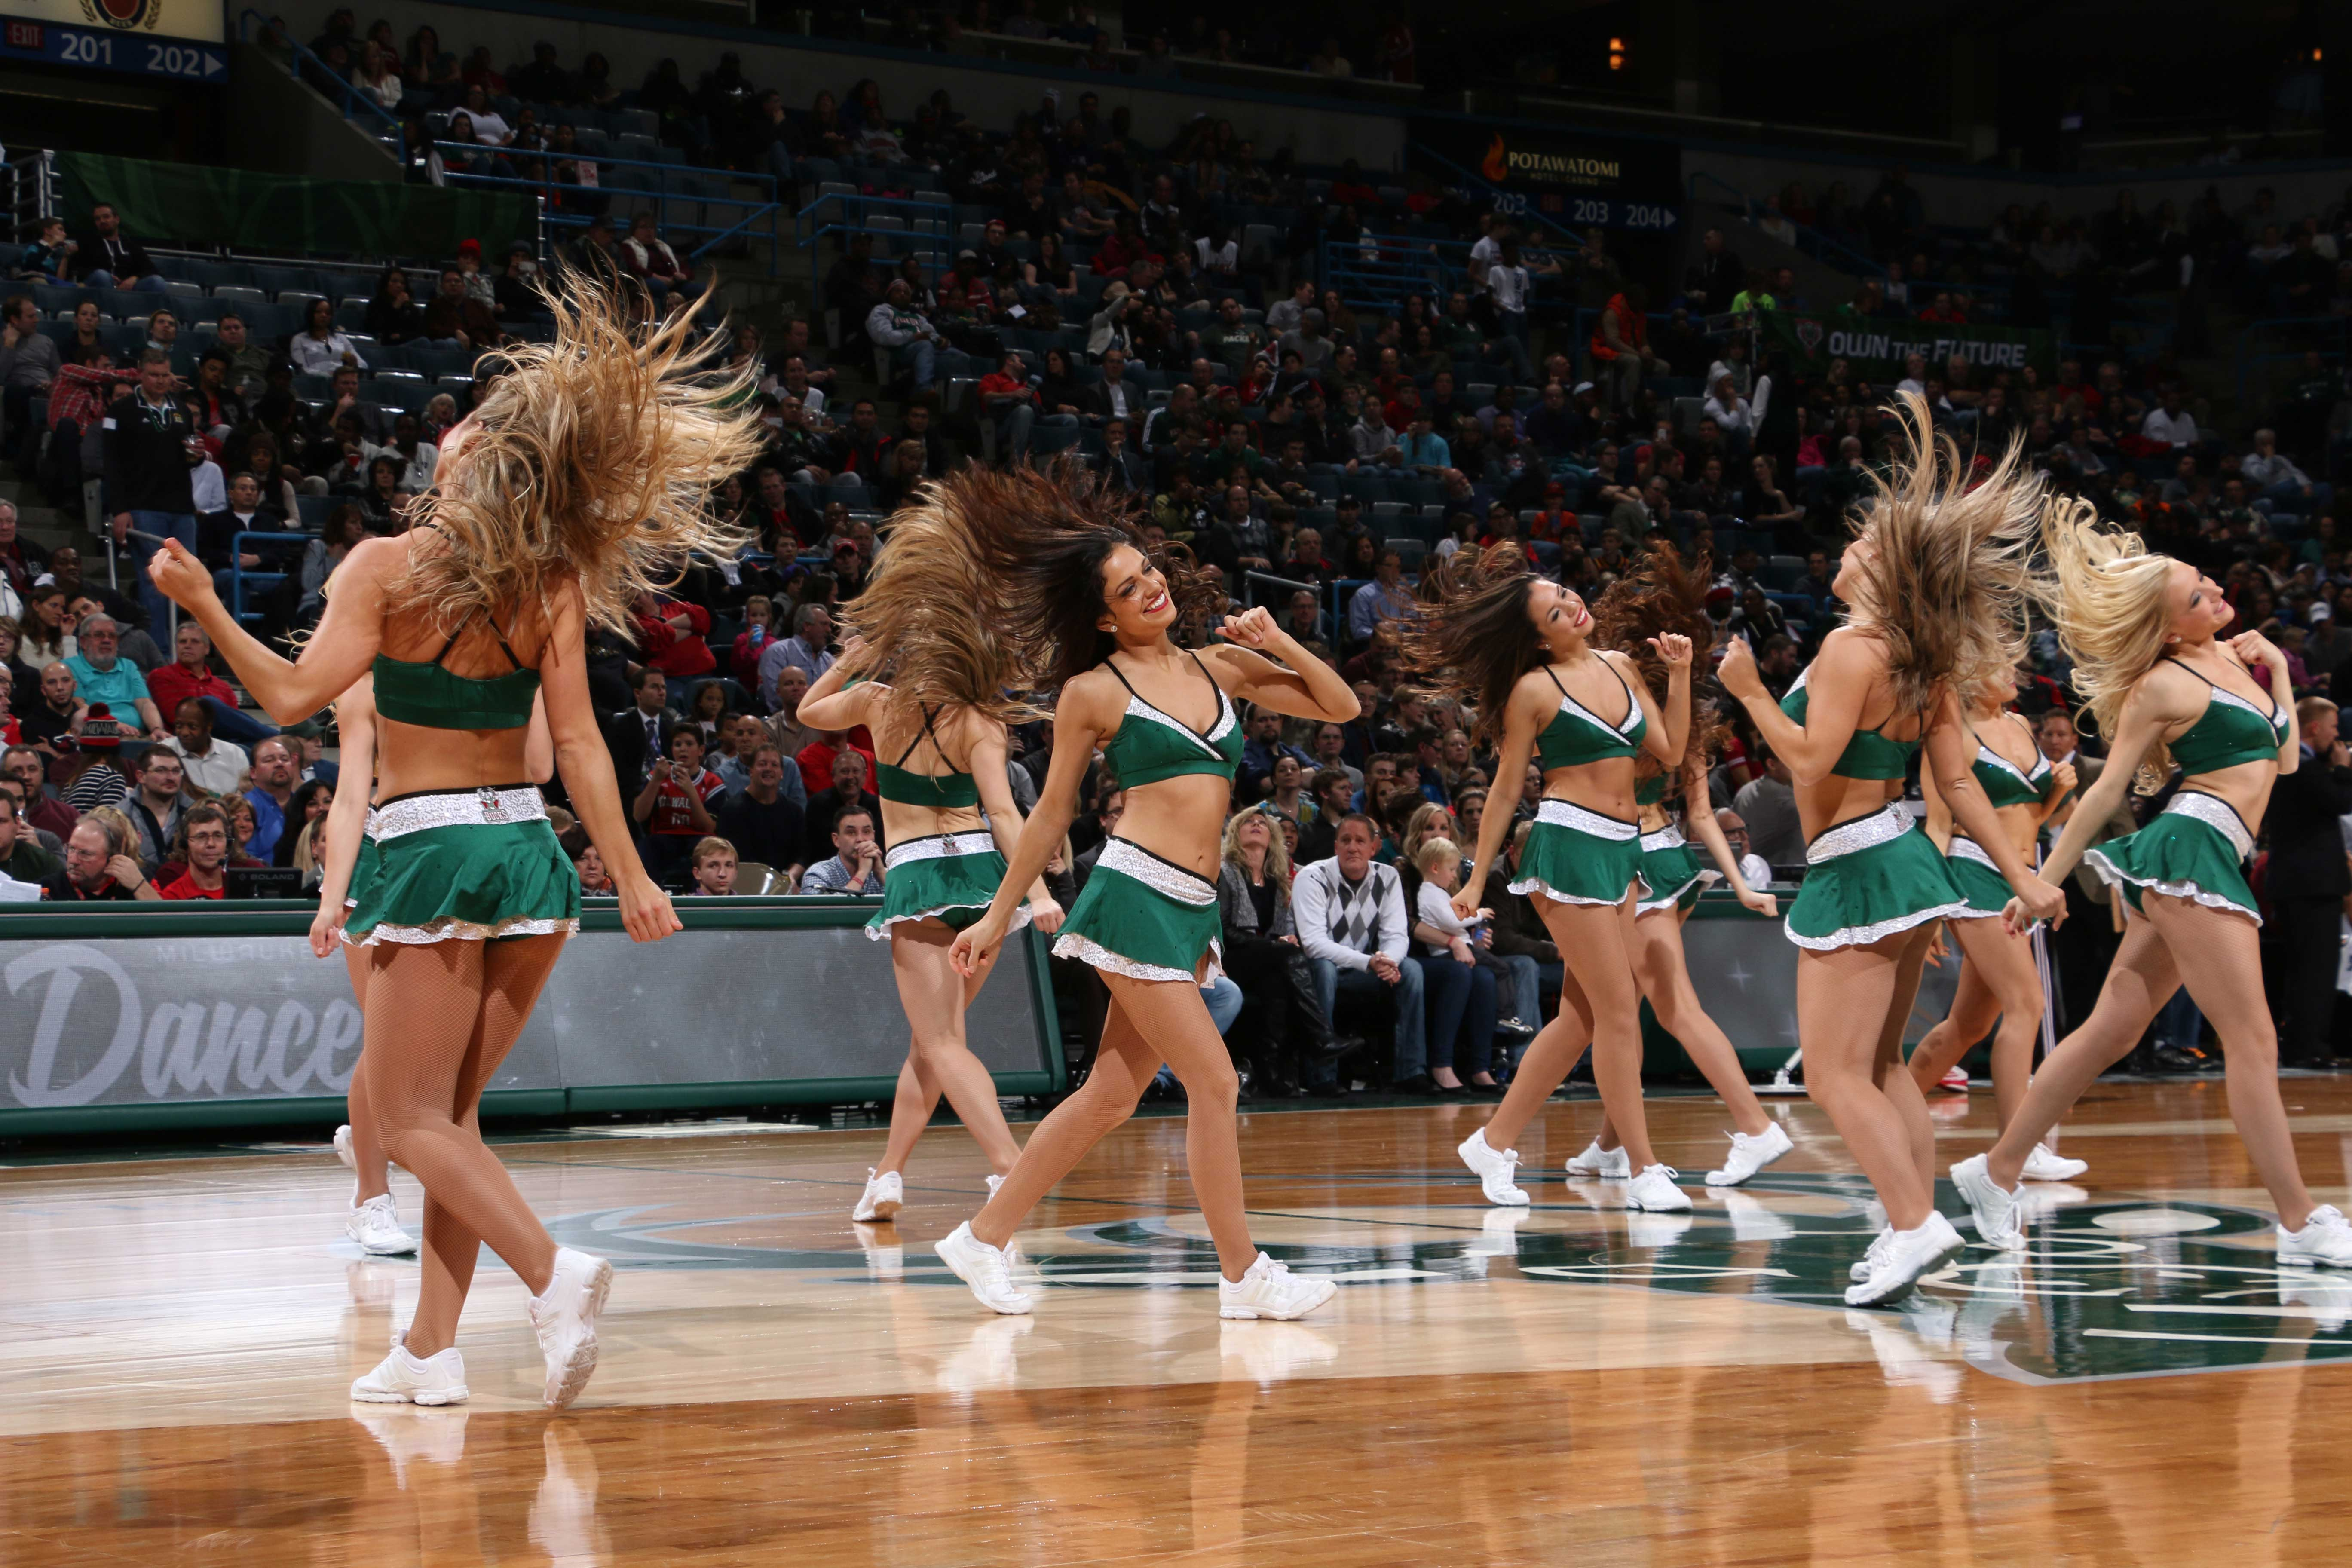 Supreme Court to Hear Copyright Fight Over Cheerleader